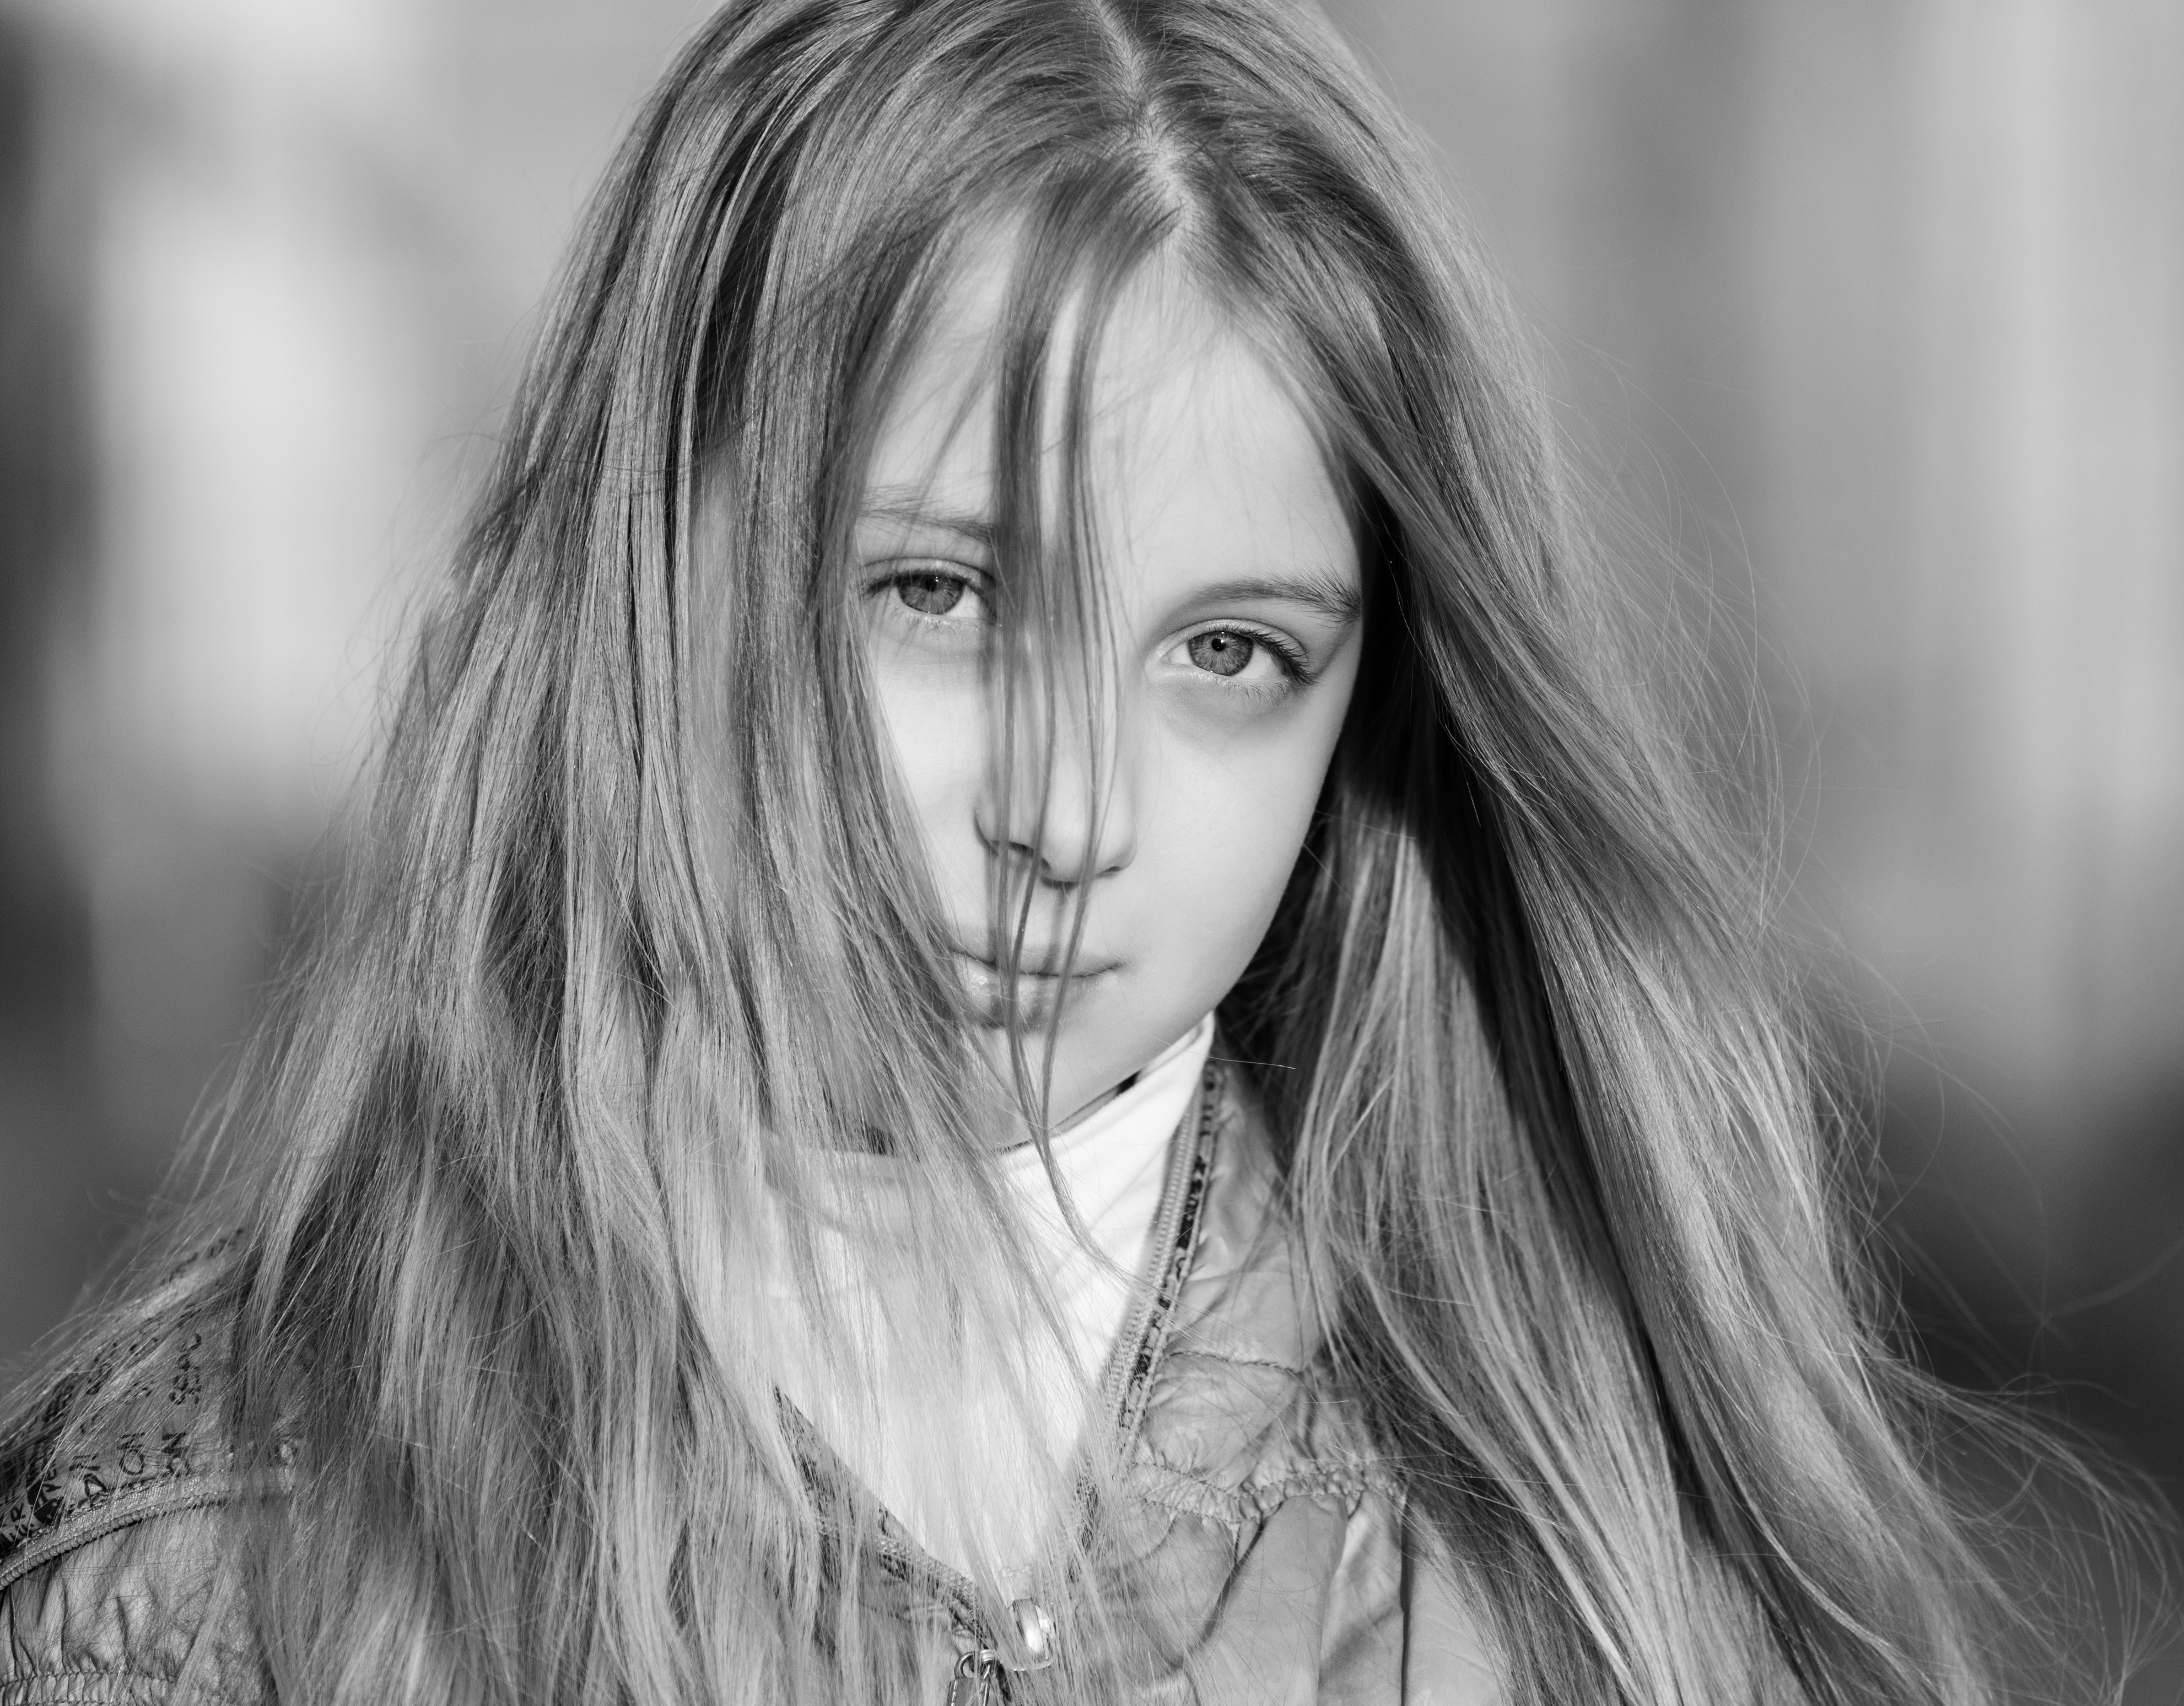 a blond long-haired Roman-Catholic girl photographed in April 2014, portrait 11 out of 11, black and white